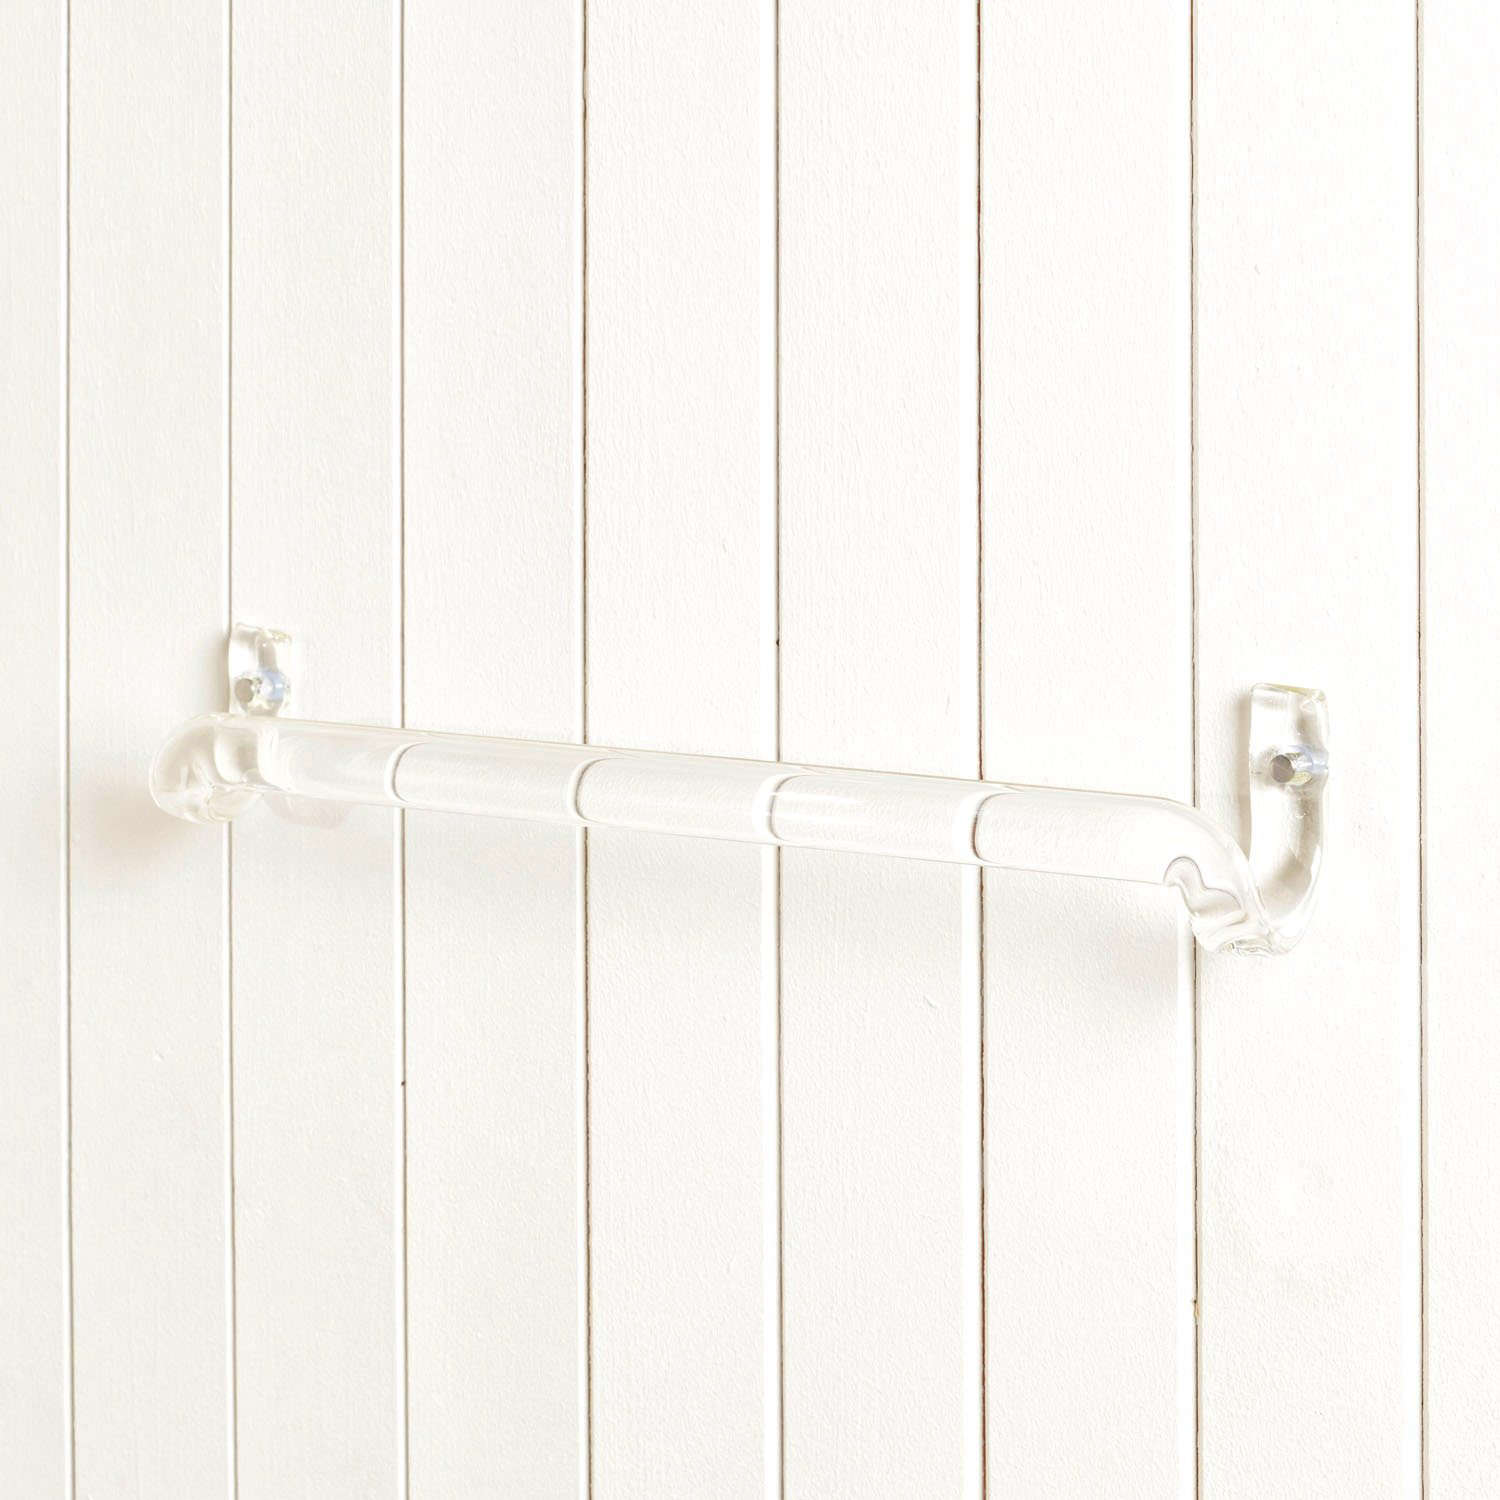 Jochen Holz Borosilicate Glass Towel Rail at The New Craftsmen